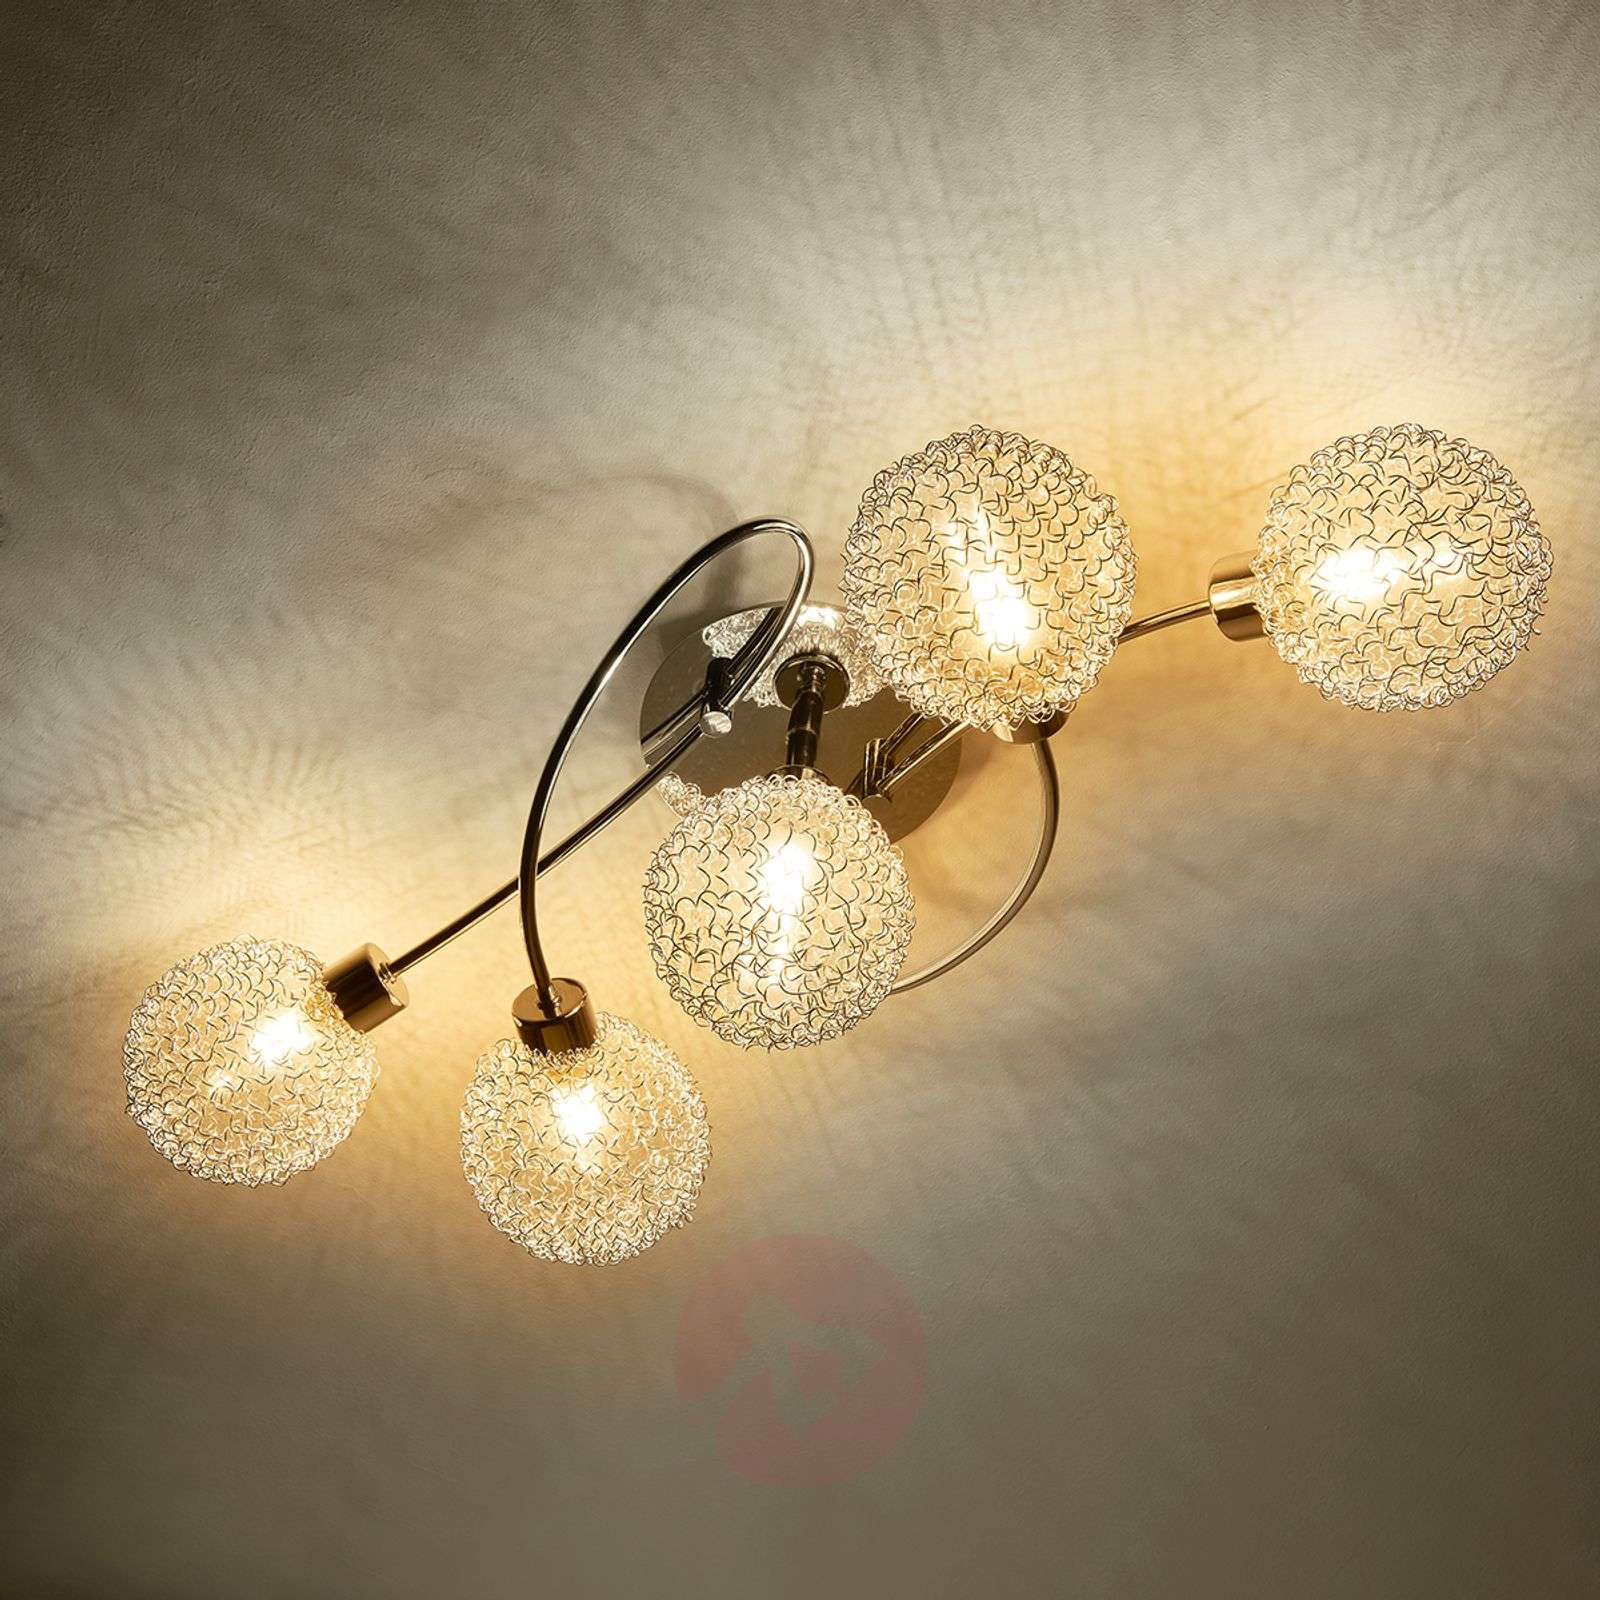 LED ceiling lamp Ticino in a playful style-9620782-04